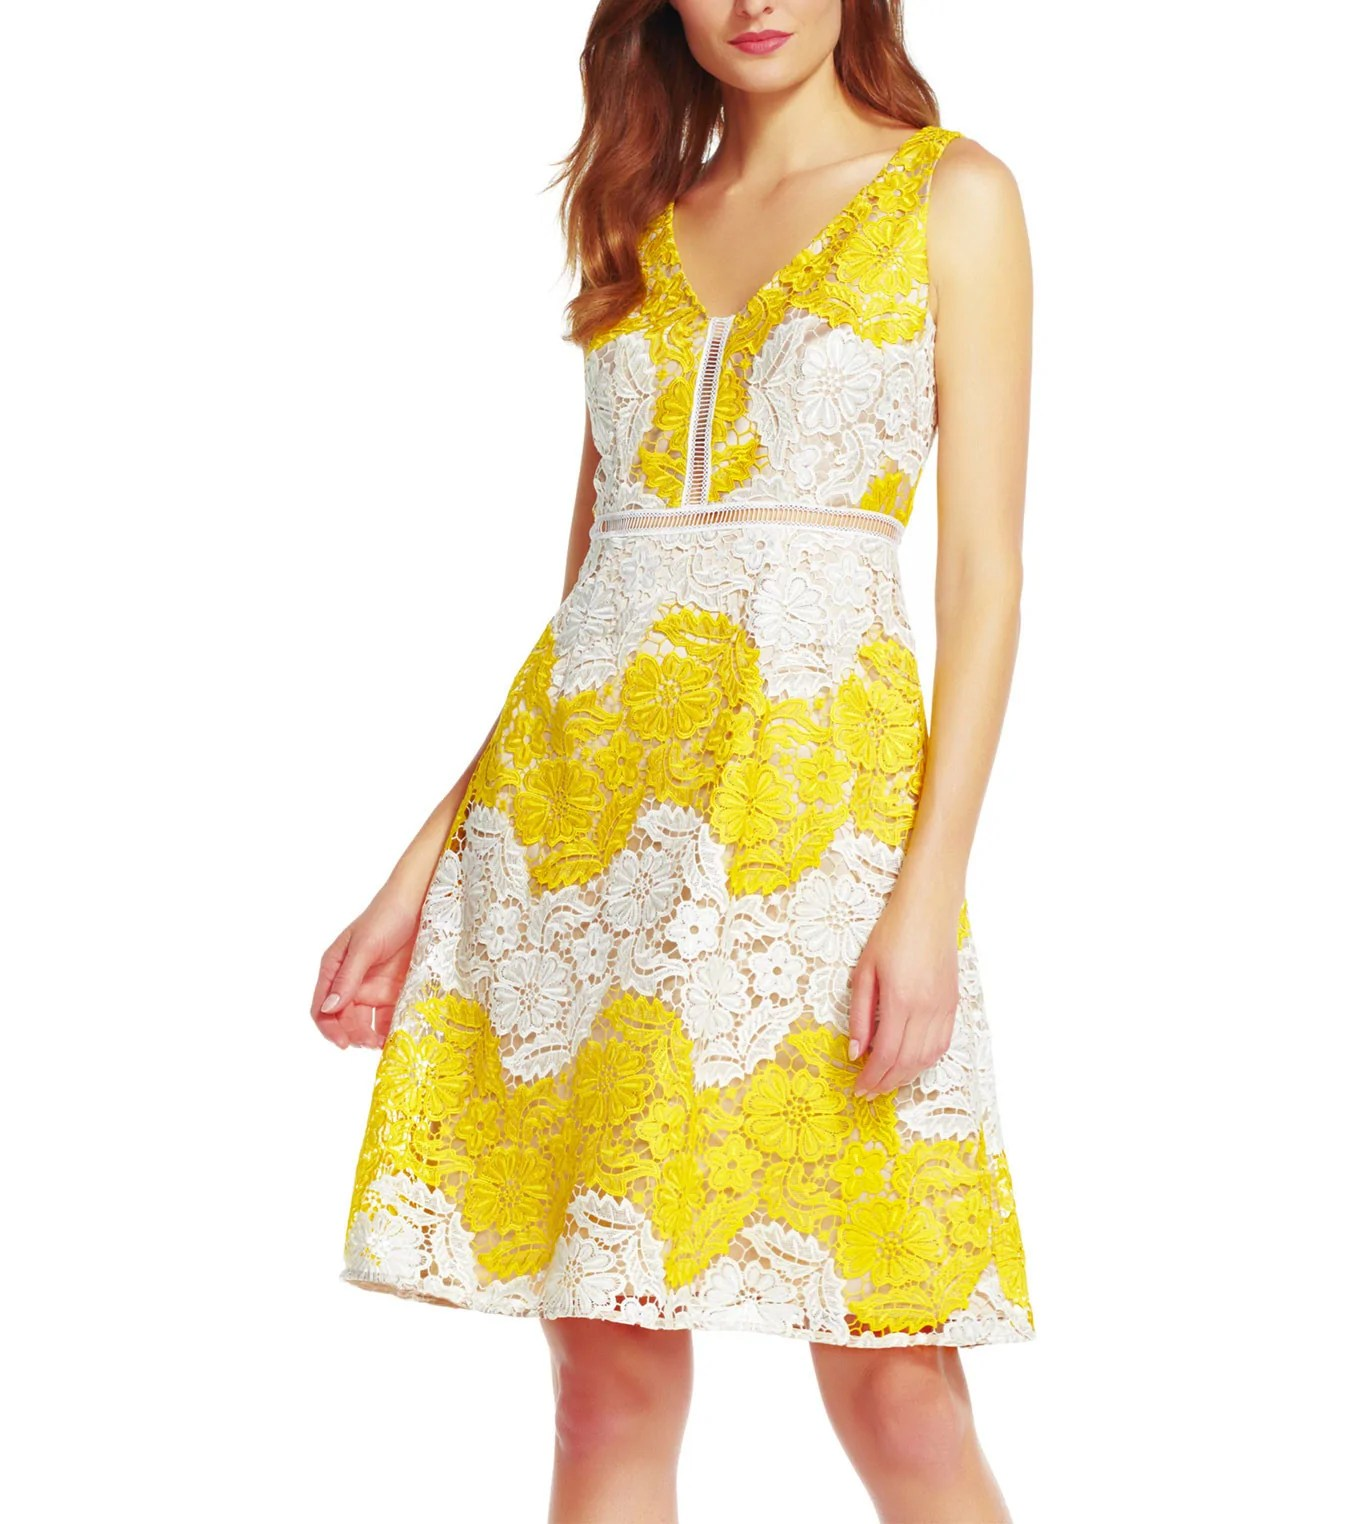 Yellowithwhite Lace Dress - Curatorz